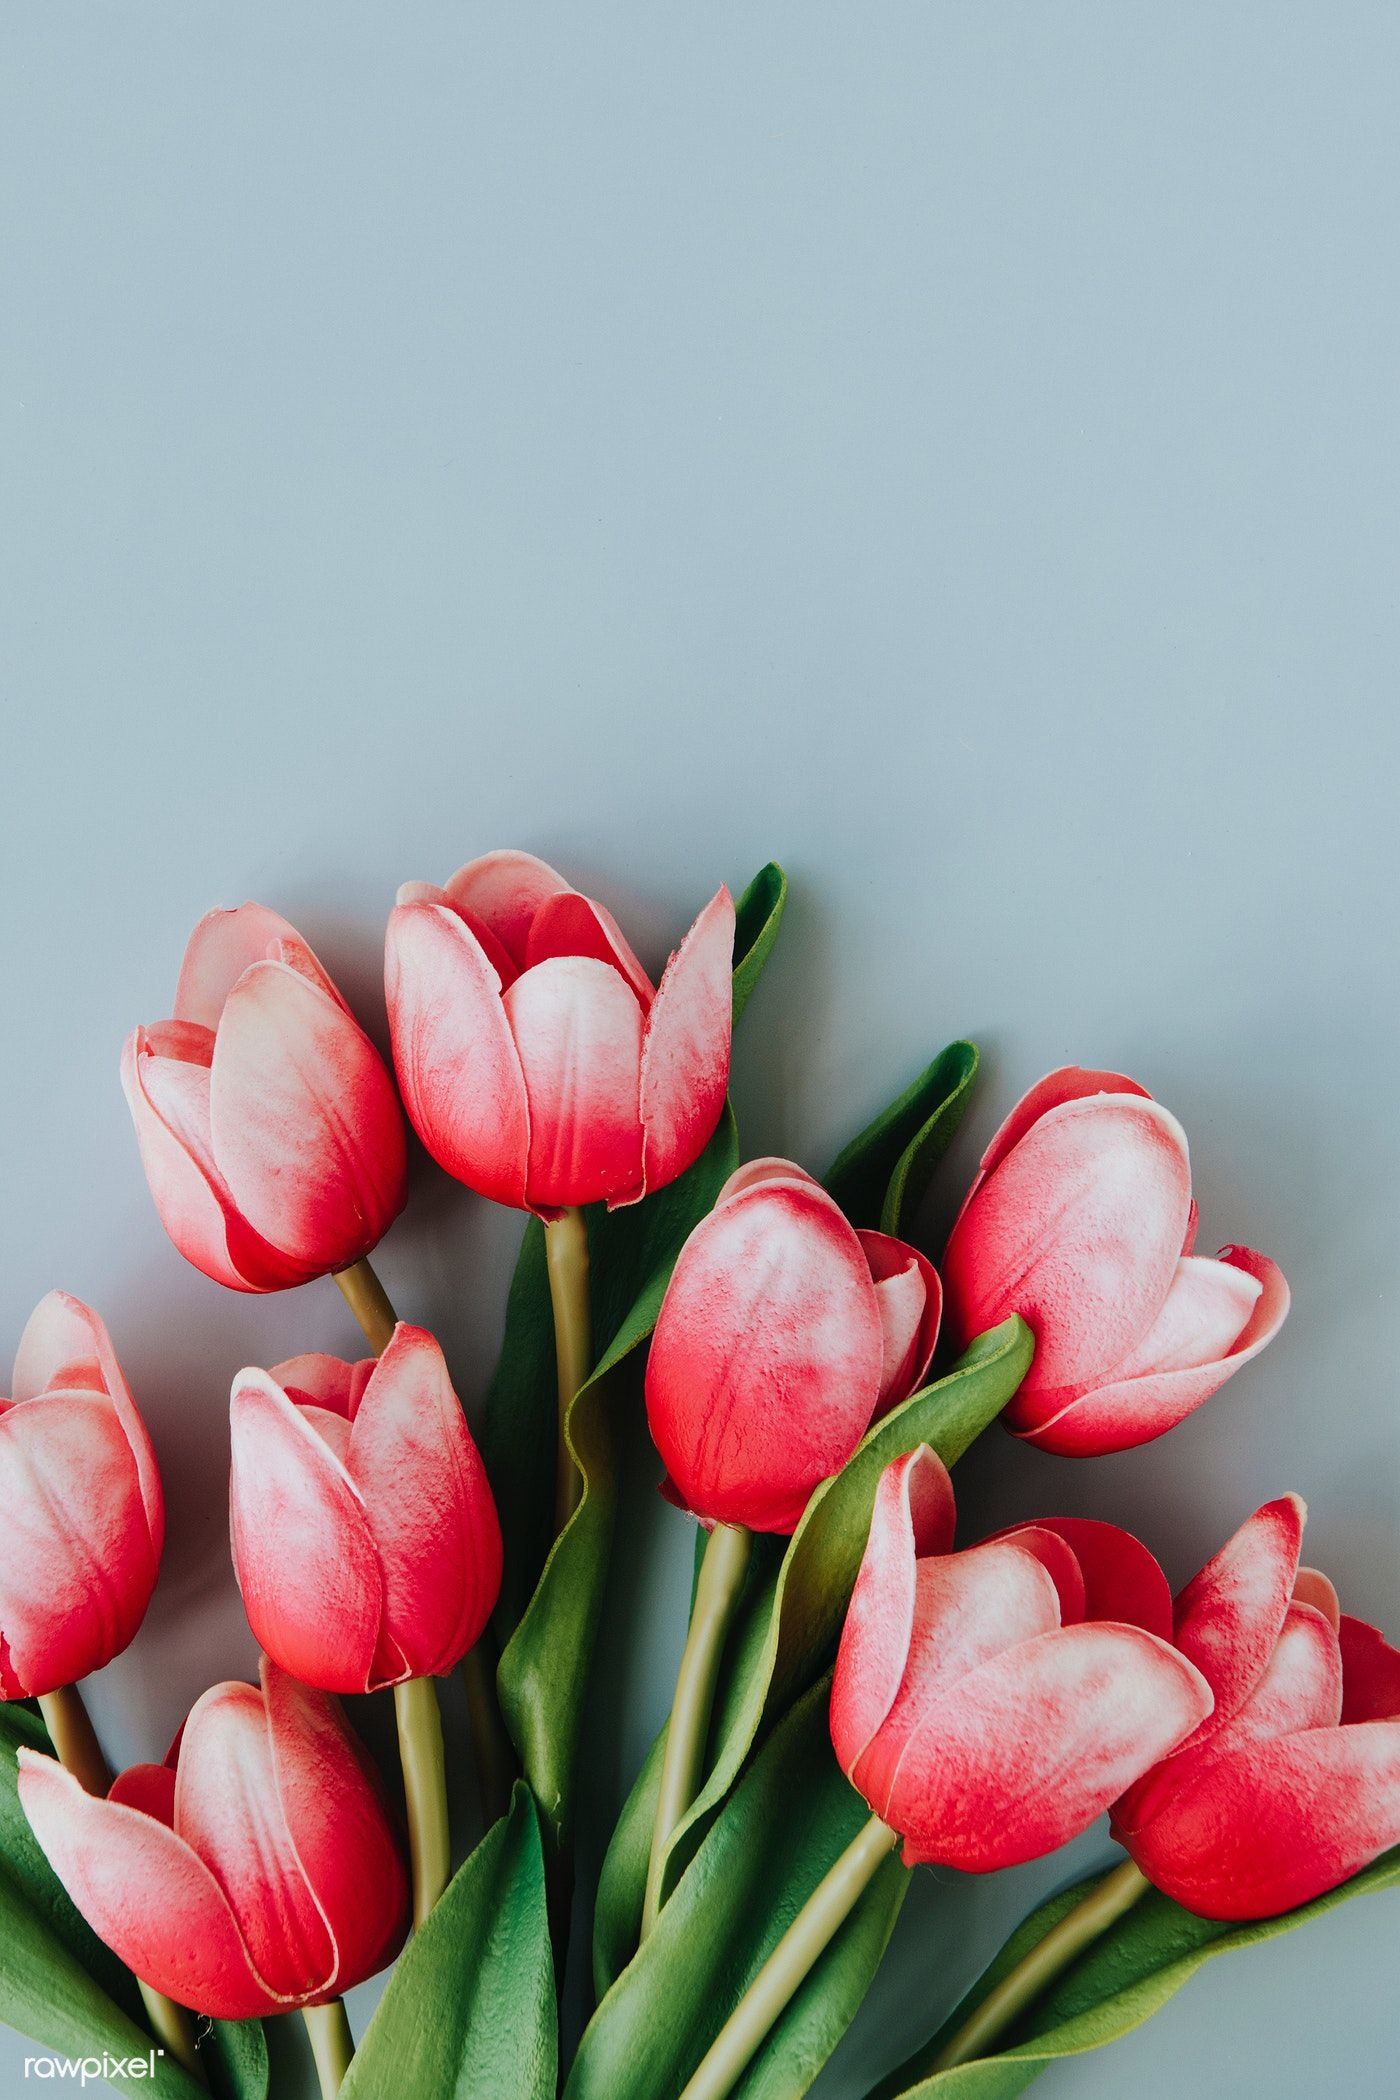 Download Premium Image Of Red And White Tulip On Blank Blue Background Flower Background Wallpaper White Tulips Tulips Flowers